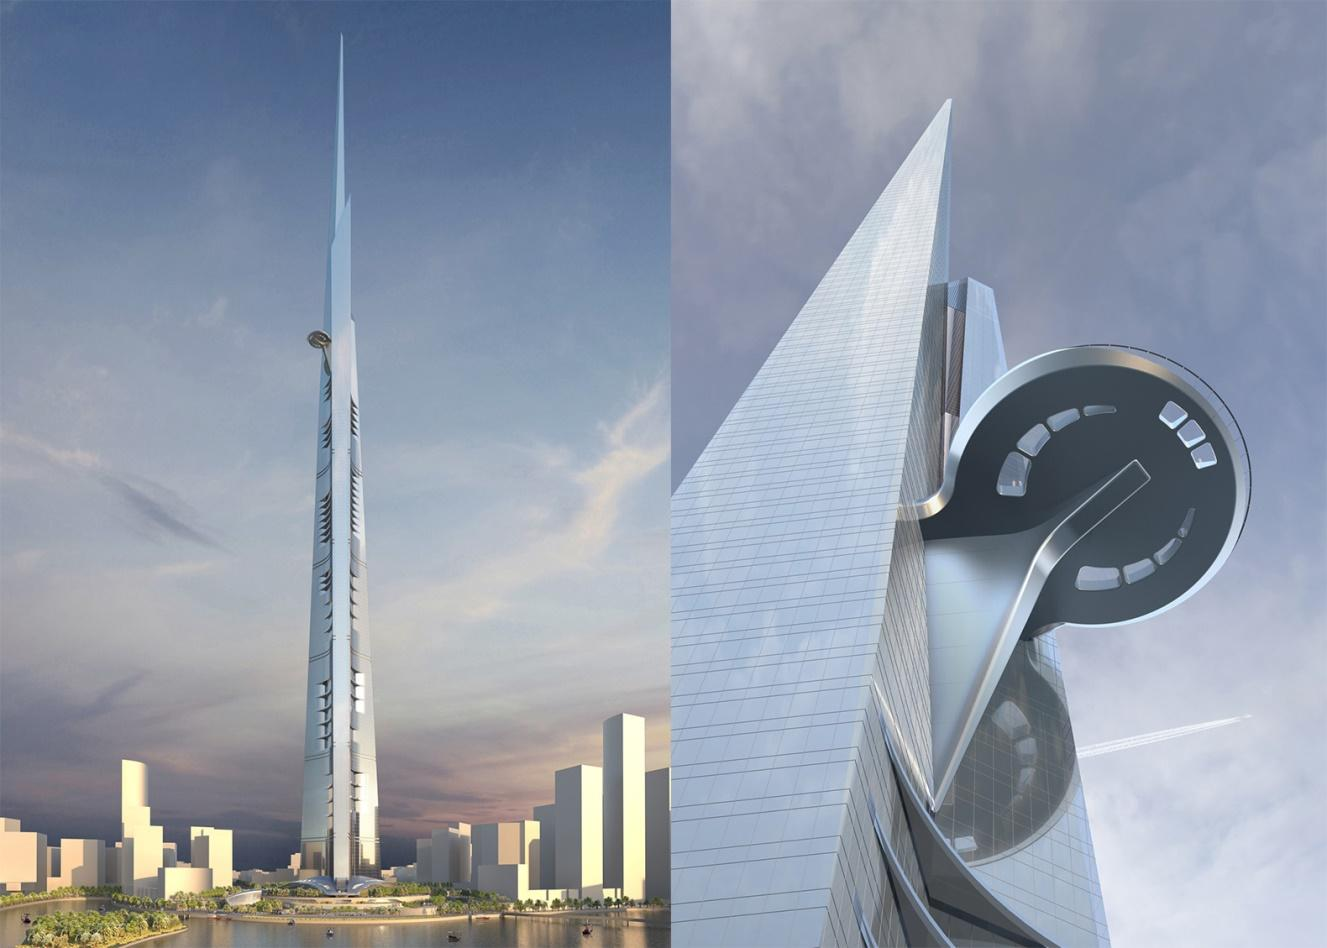 http://assets.inhabitat.com/wp-content/blogs.dir/1/files/2015/12/Jeddah-Tower-by-Adrian-Smith-Gordon-Gill-Architecture-9.jpg